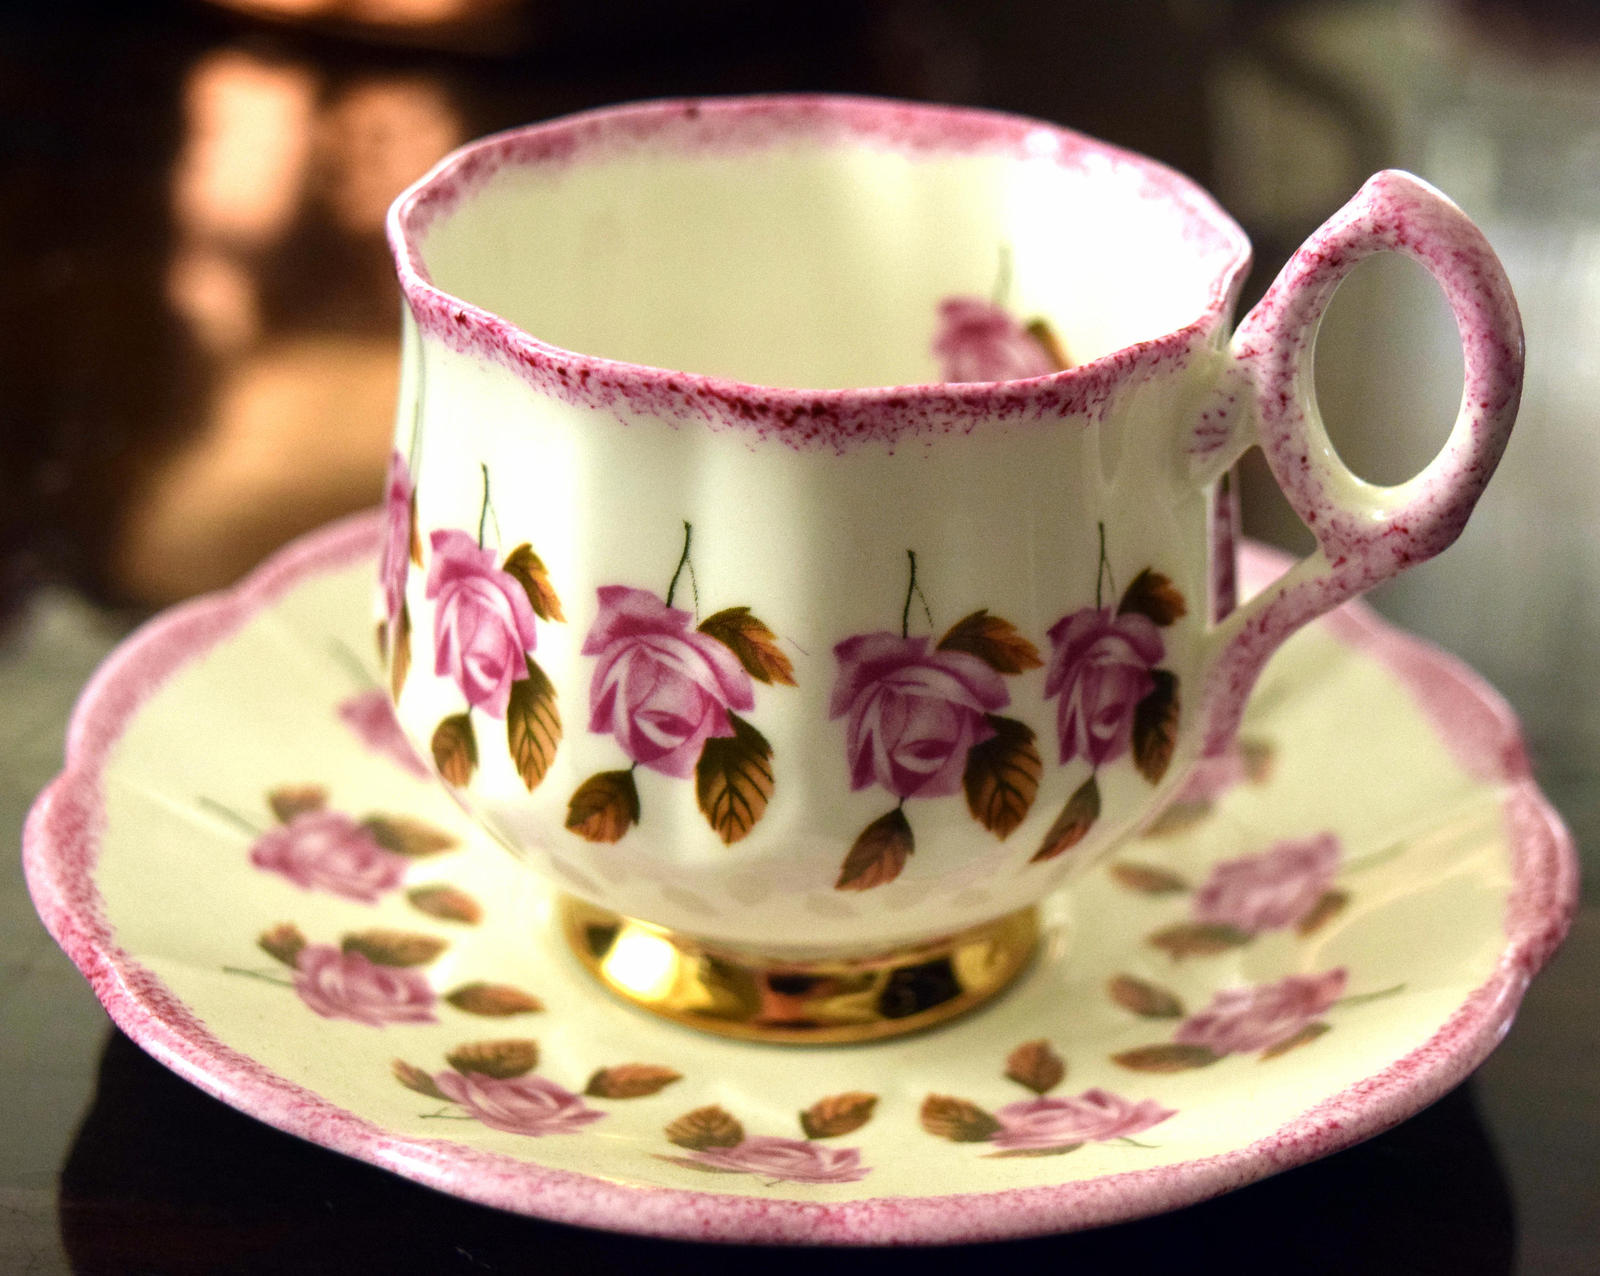 ROSINA Pink Roses Tea Cup Set Vintage 1950's Rosina English Bone China #5641 - $18.45